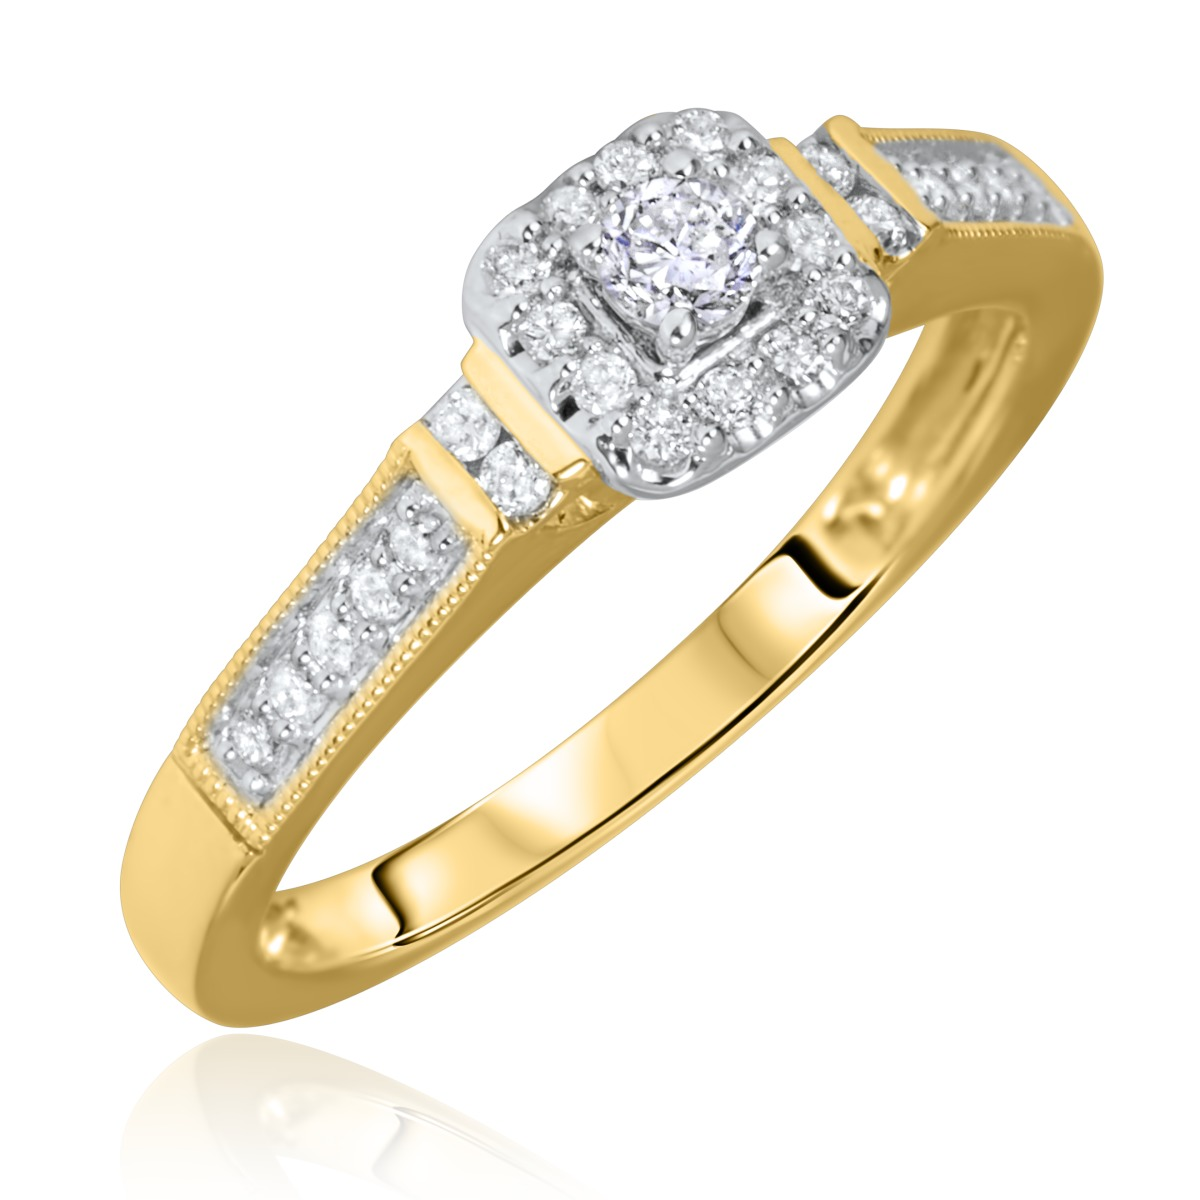 1/5 Carat T.W. Solitaire, Rounds Cut Diamond Engagement Ring 10K Yellow Gold